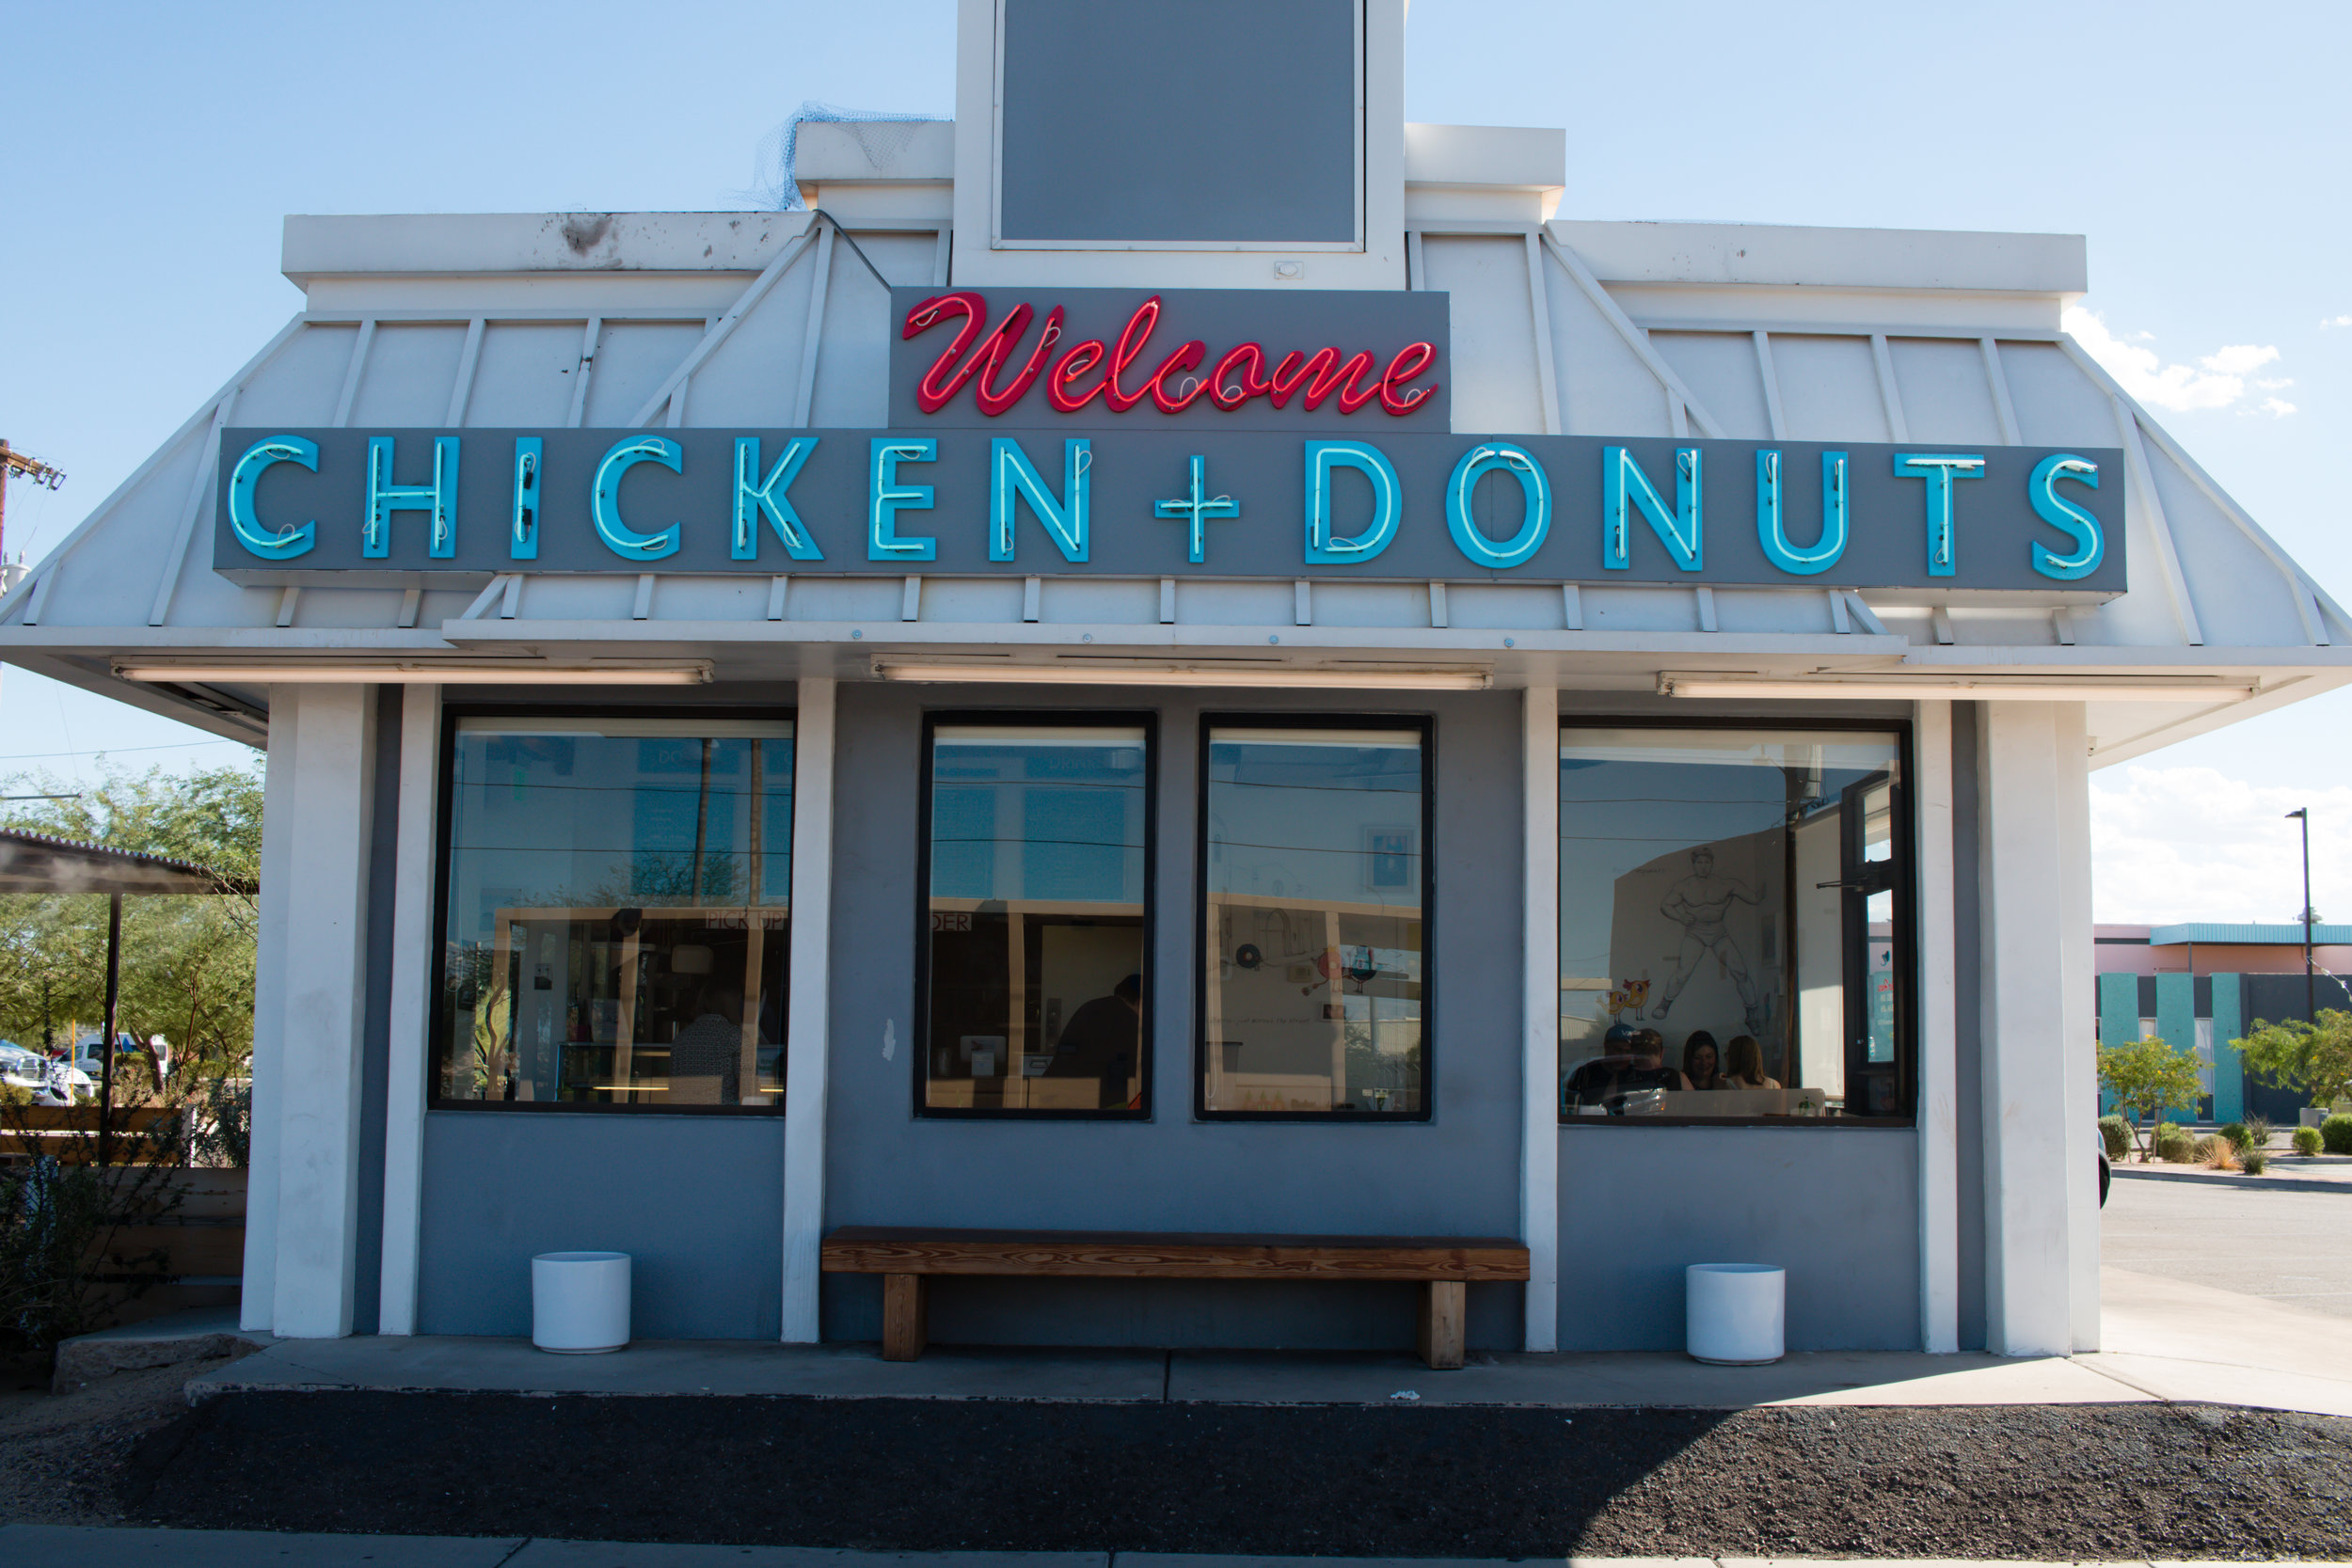 welcome-chicken-and-donuts-phoenix-arizona-busybeingshasha